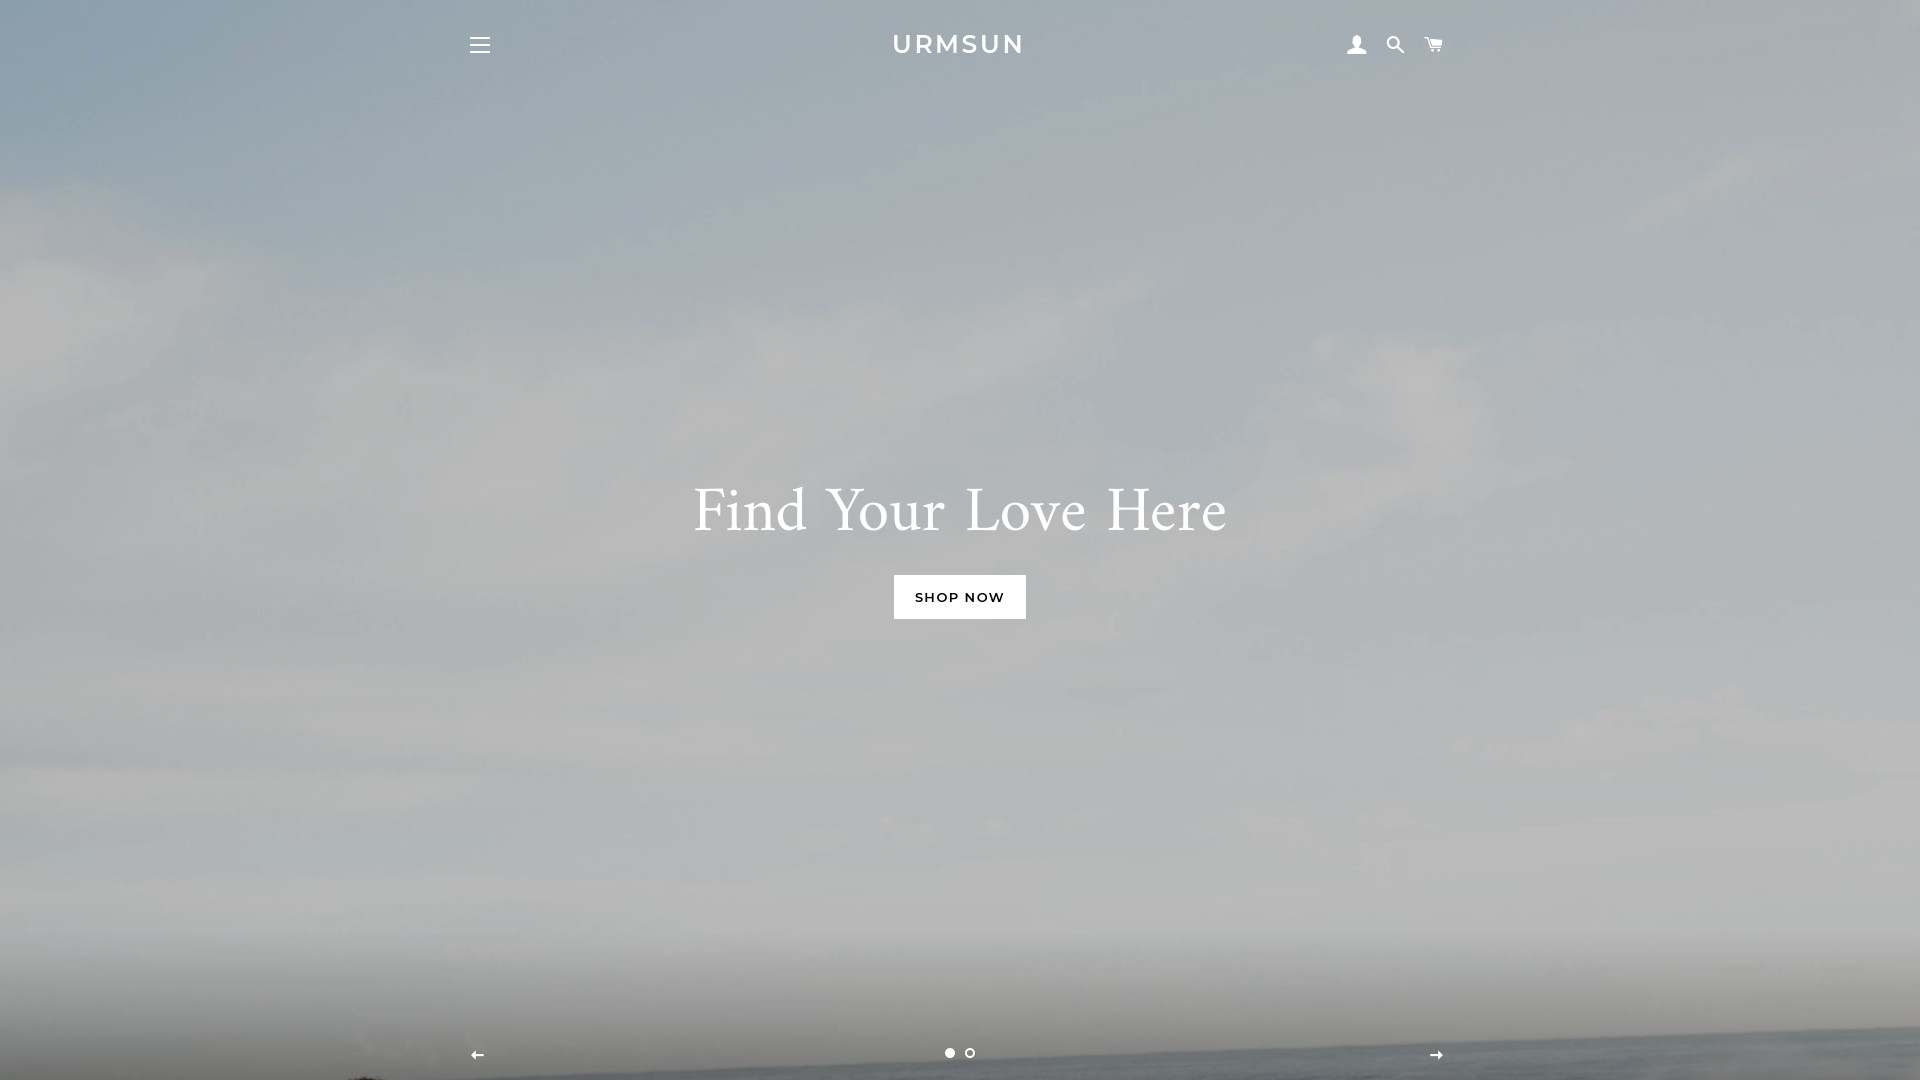 Is Urmsun a Scam? Review of the Online Store